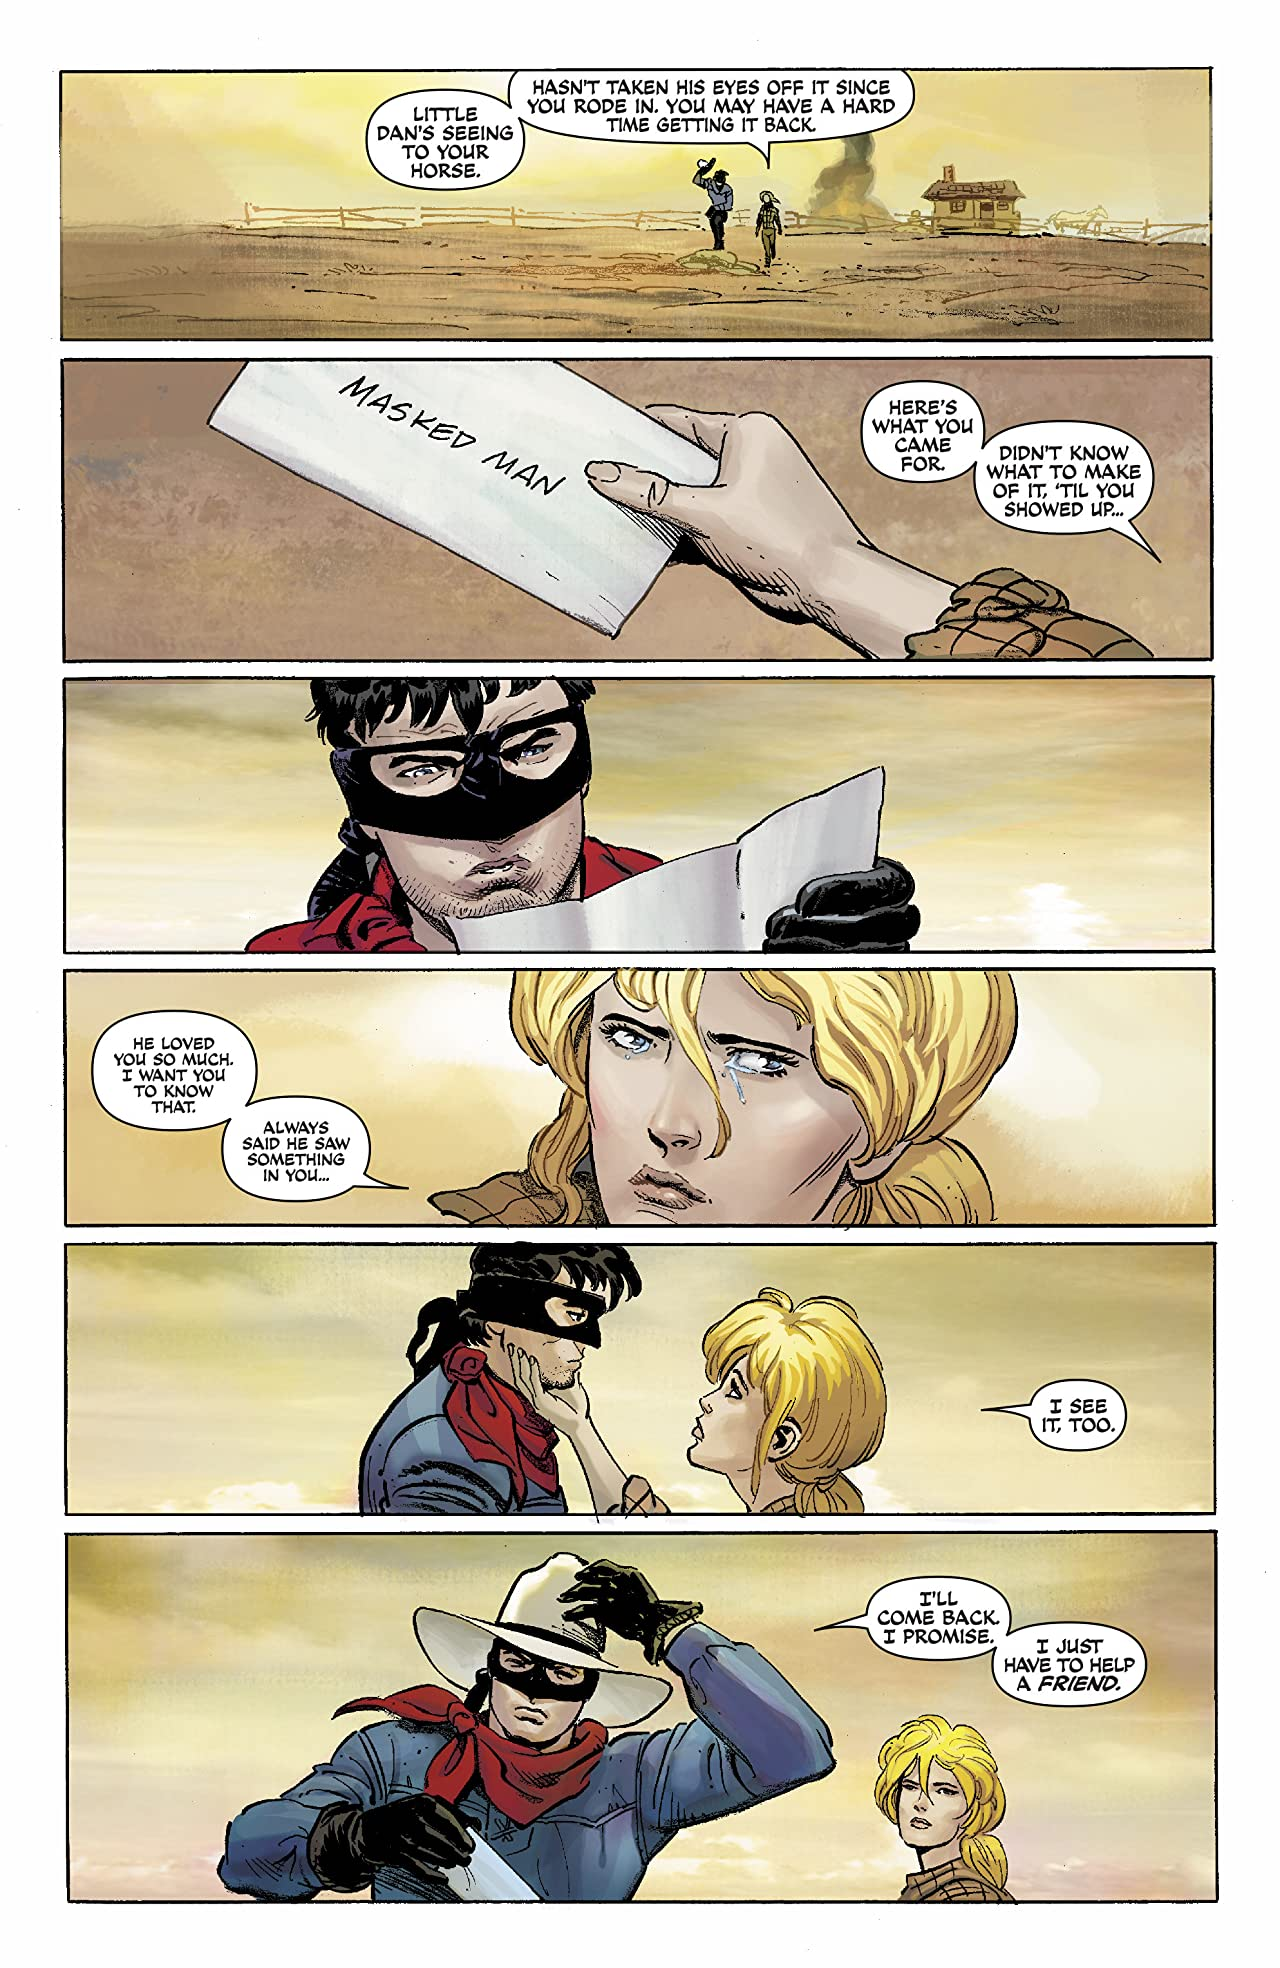 The Lone Ranger #6